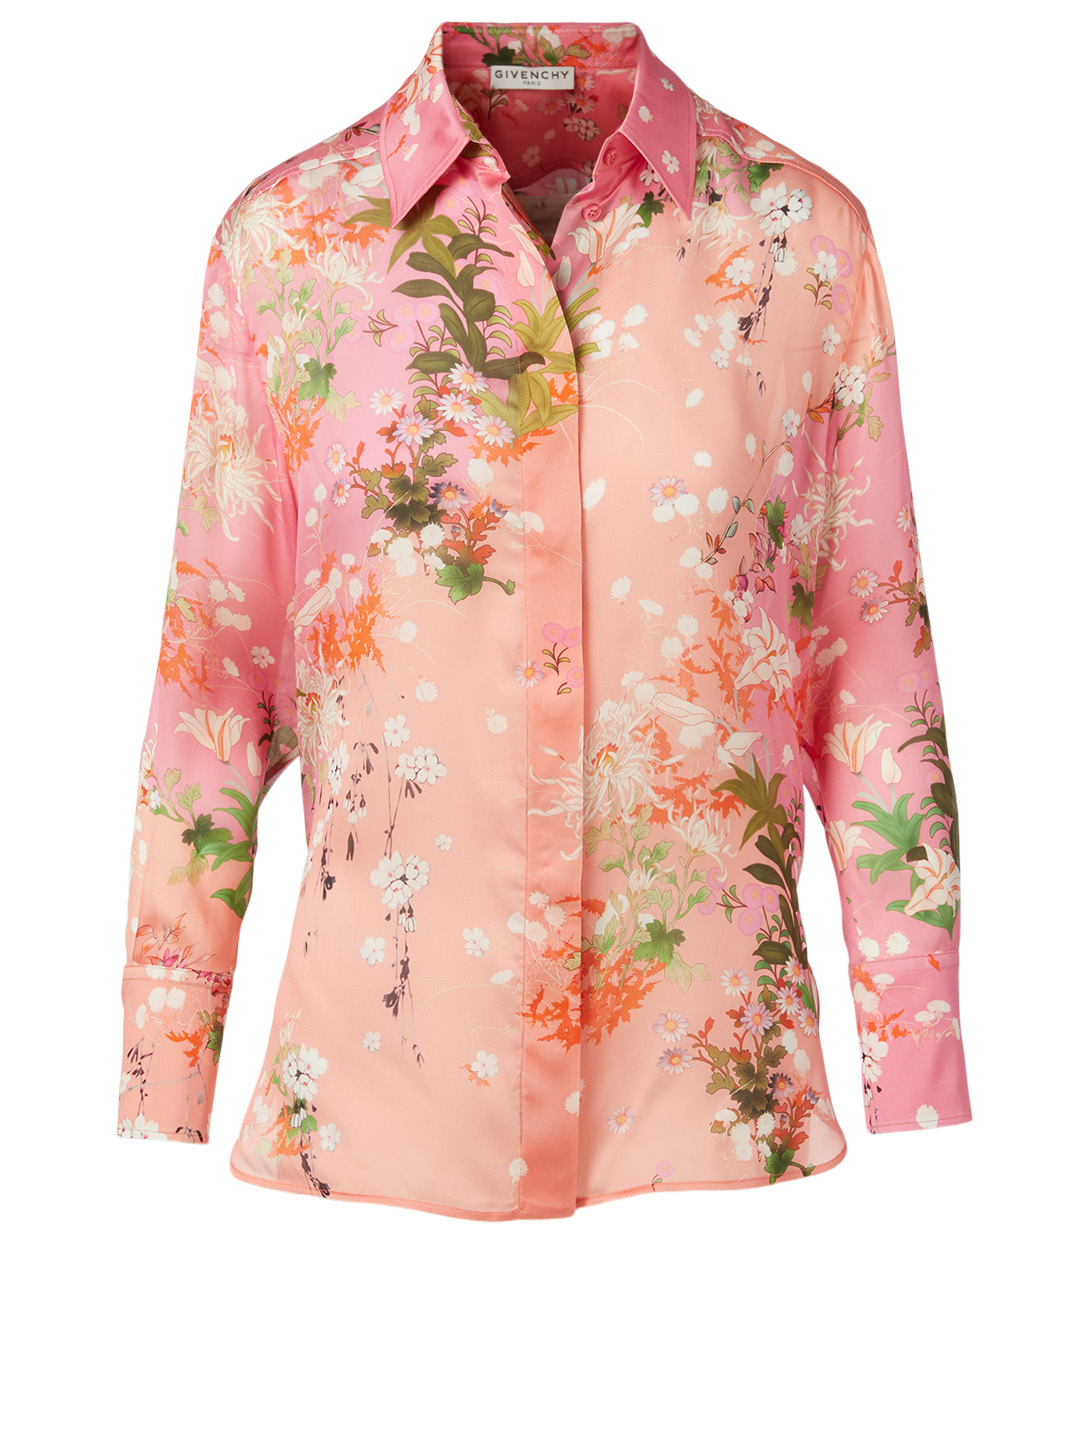 GIVENCHY Silk Blouse In Floral Print Women's Pink